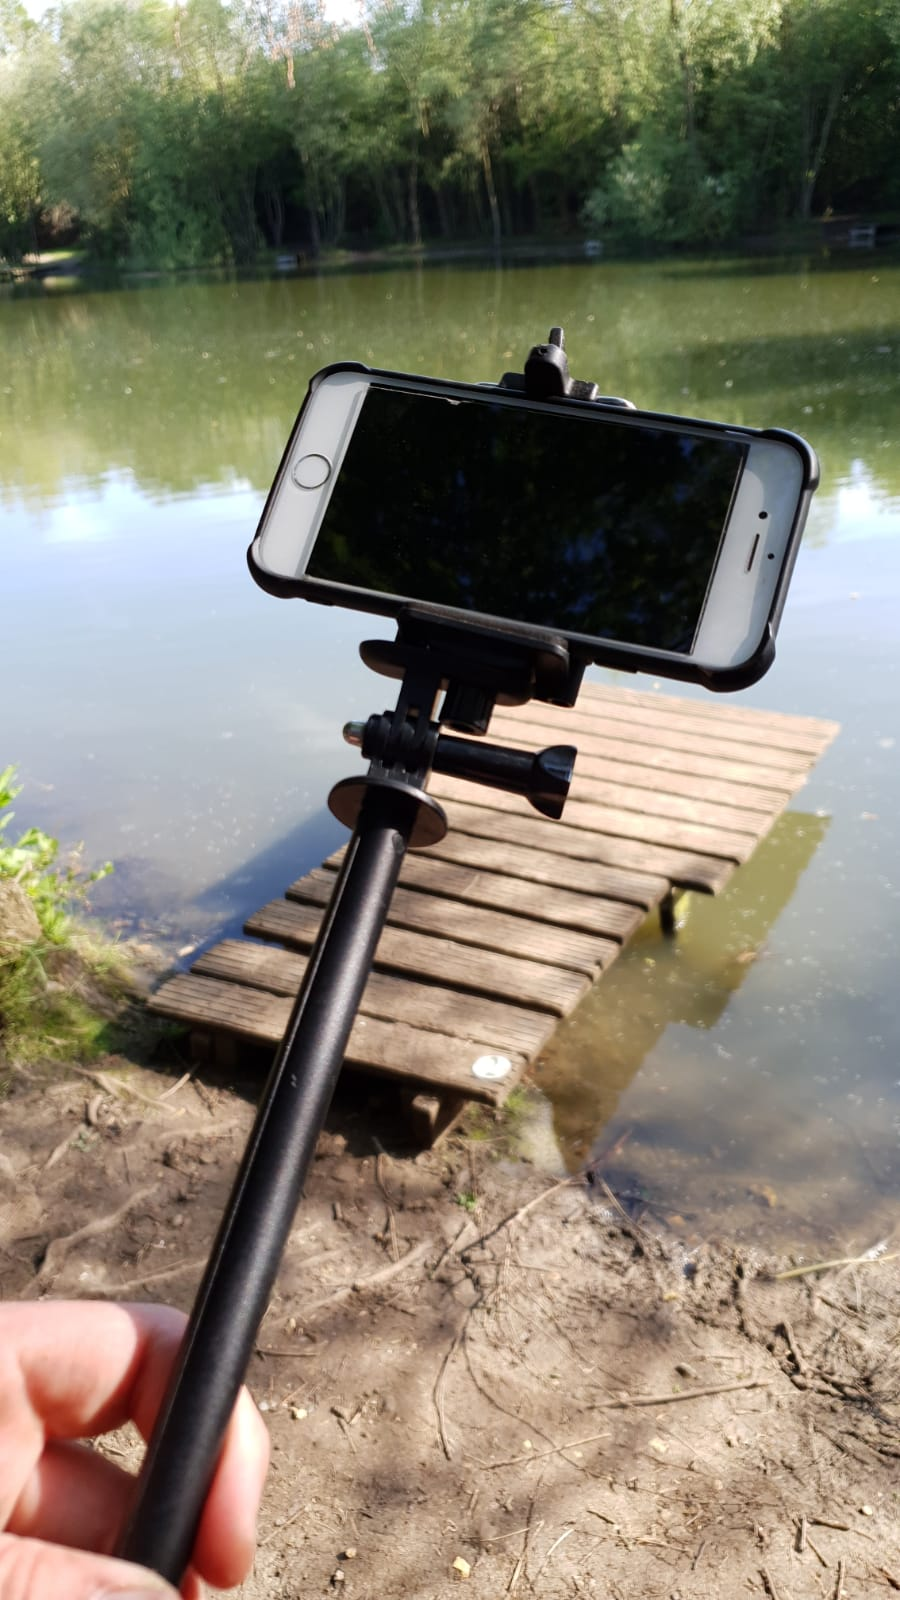 DIY option: a cheap selfie stick wedged into a rucksack or bucket can make do a tripod